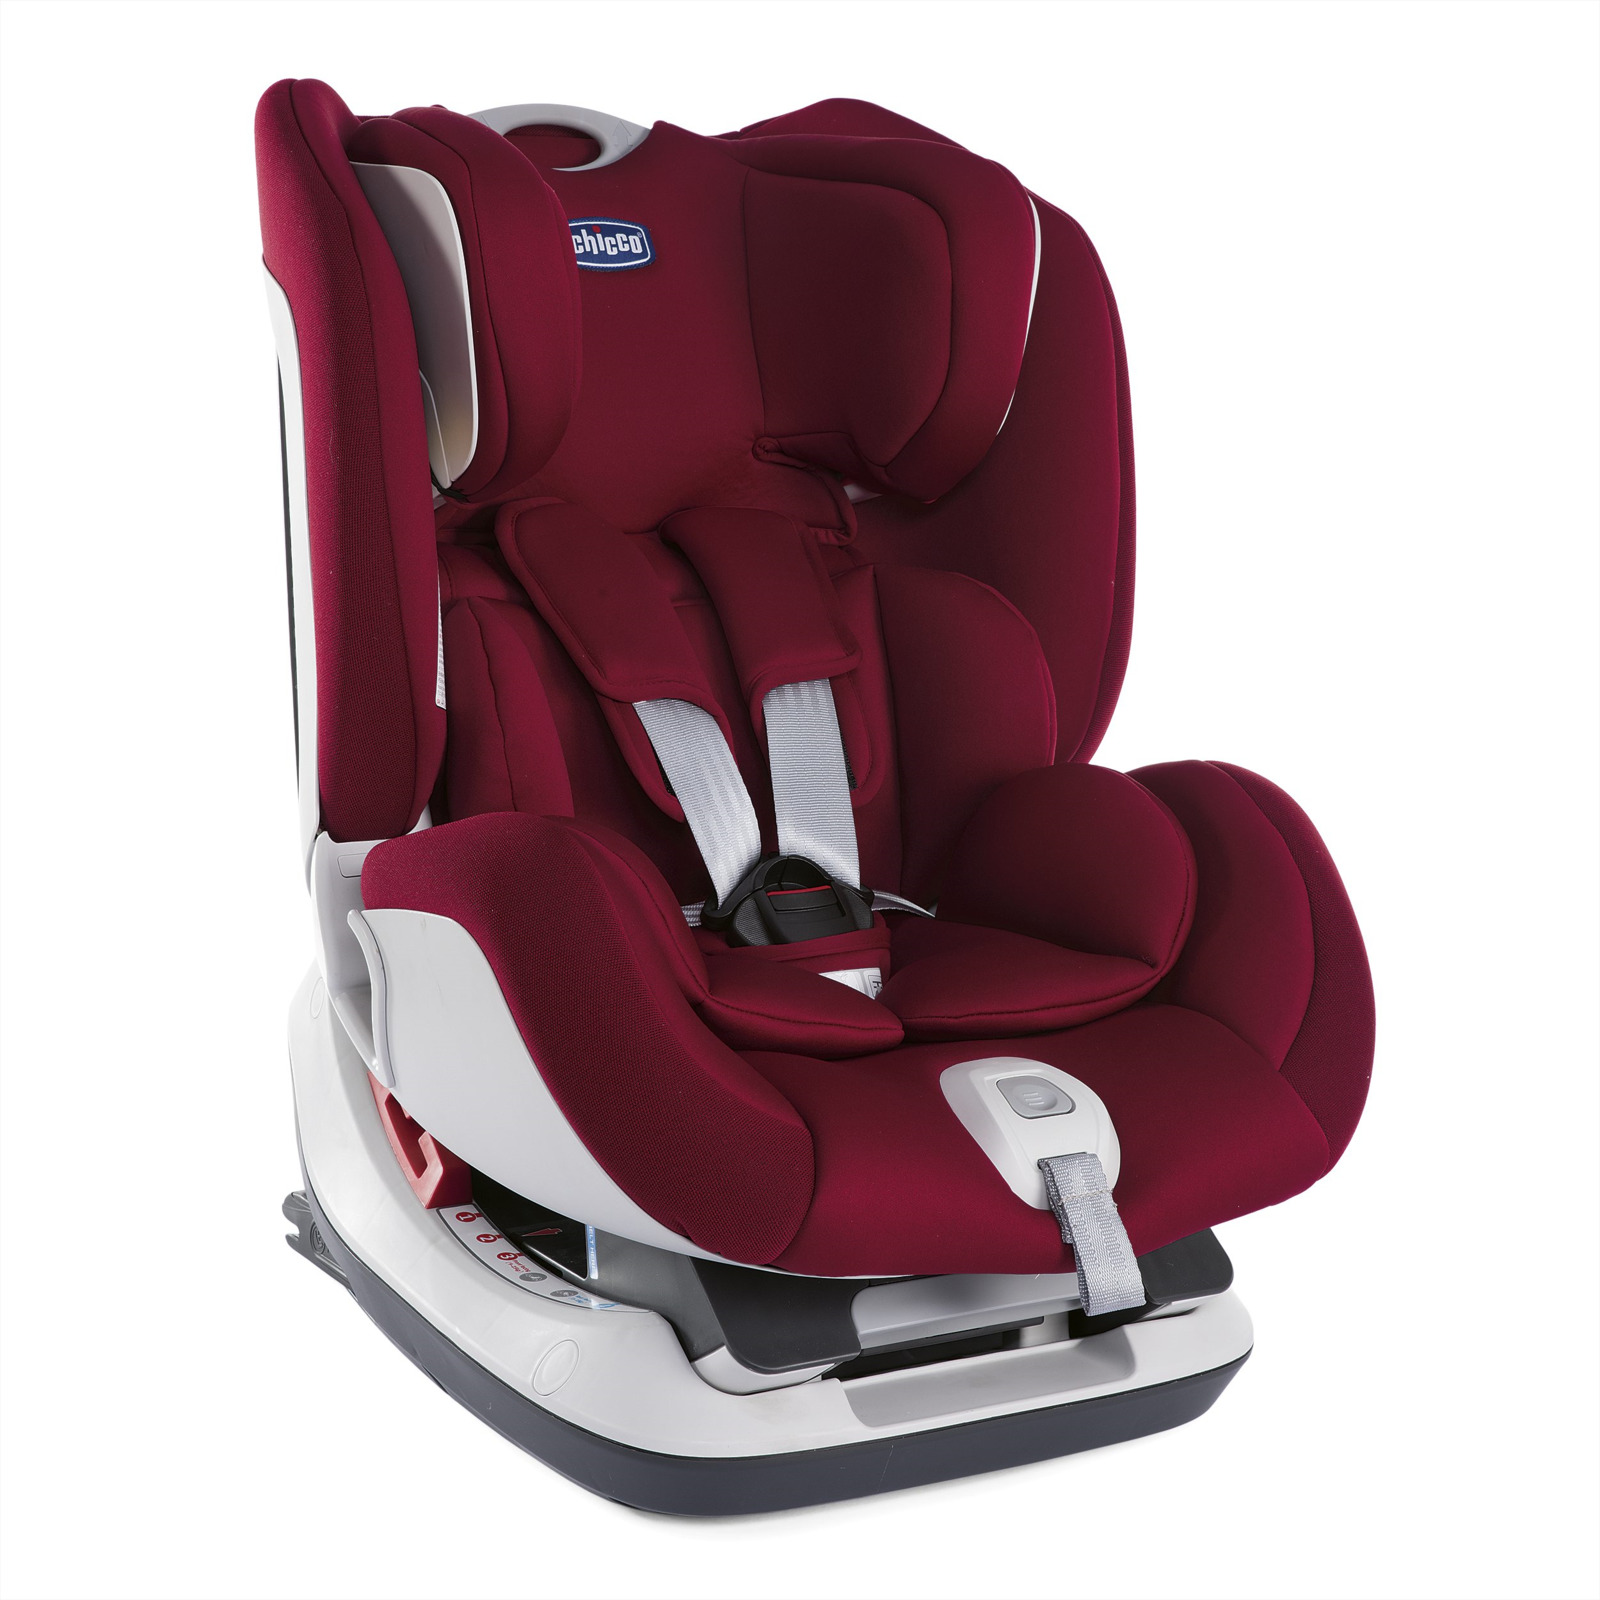 Автокресло Chicco Seat Up 012 от 0 до 25 кг, 07079828640000, бордовый автокресло chicco seat up pearl